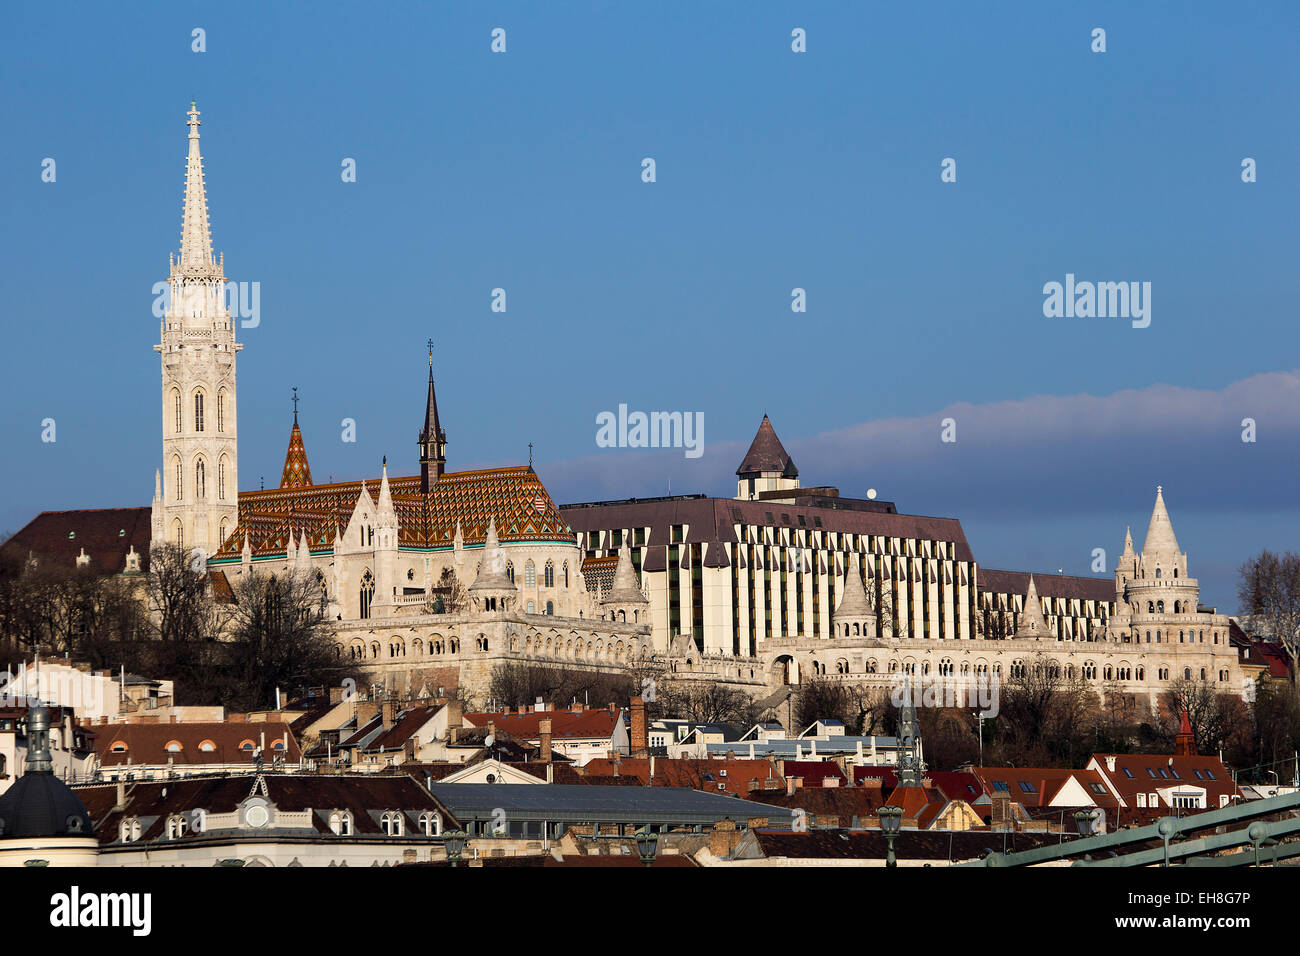 Budapest landscape showing Buda hill with Matthias church and Fisherman's Bastion - Stock Image